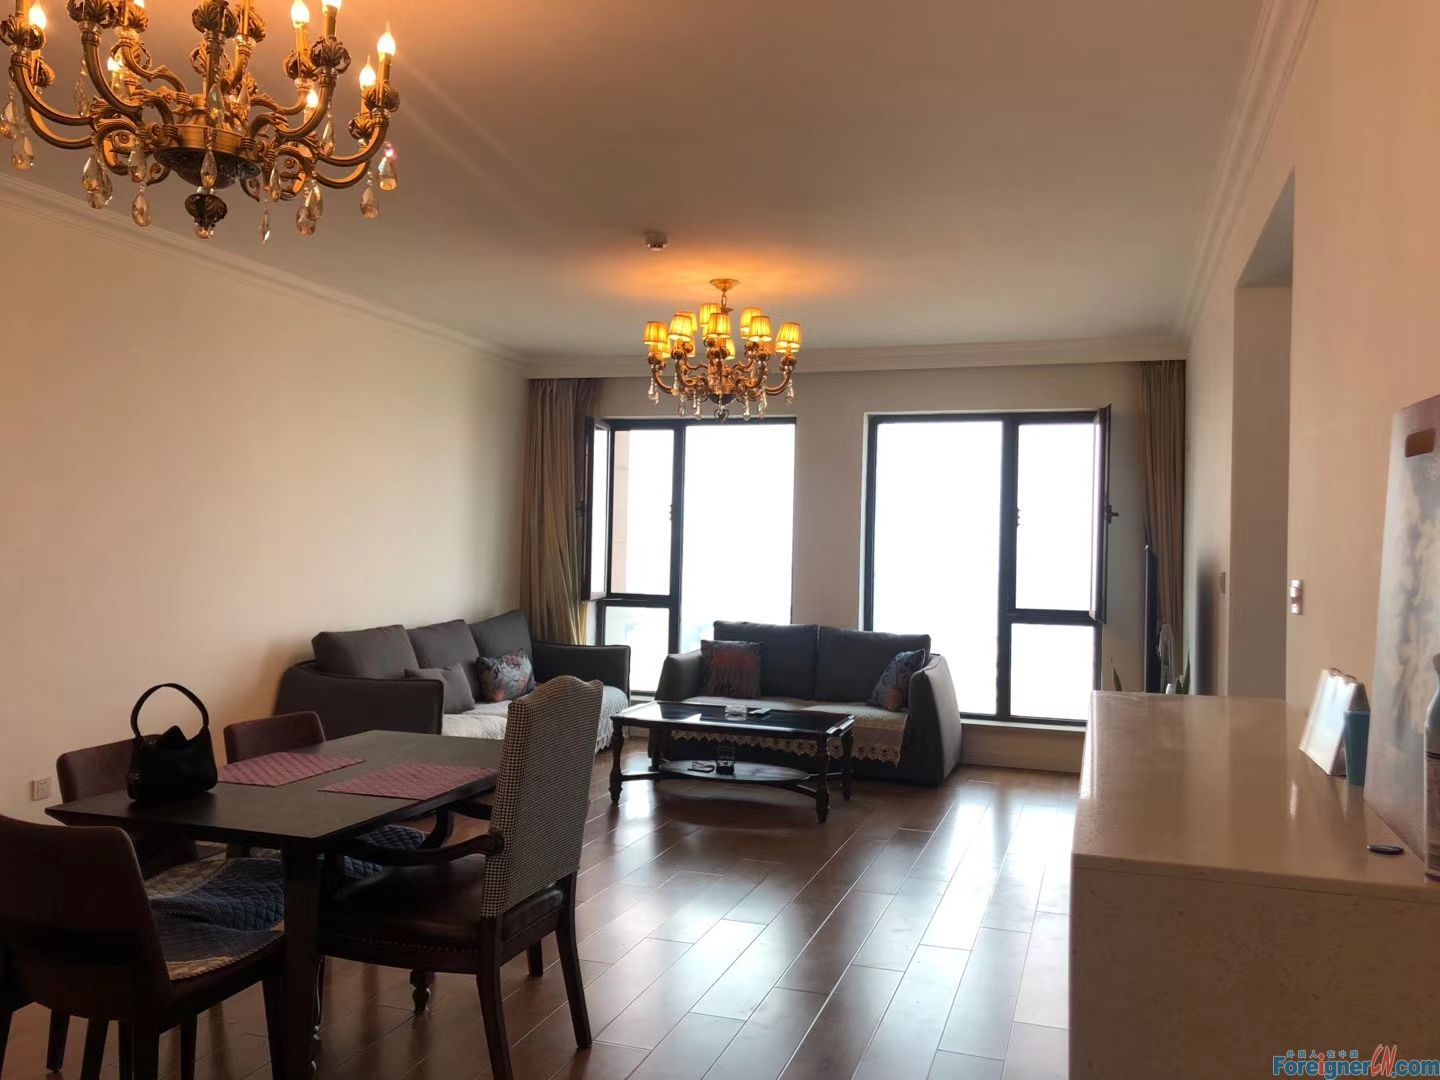 3 bed apartment for rent  in Donggang CBD.Zhongshan.